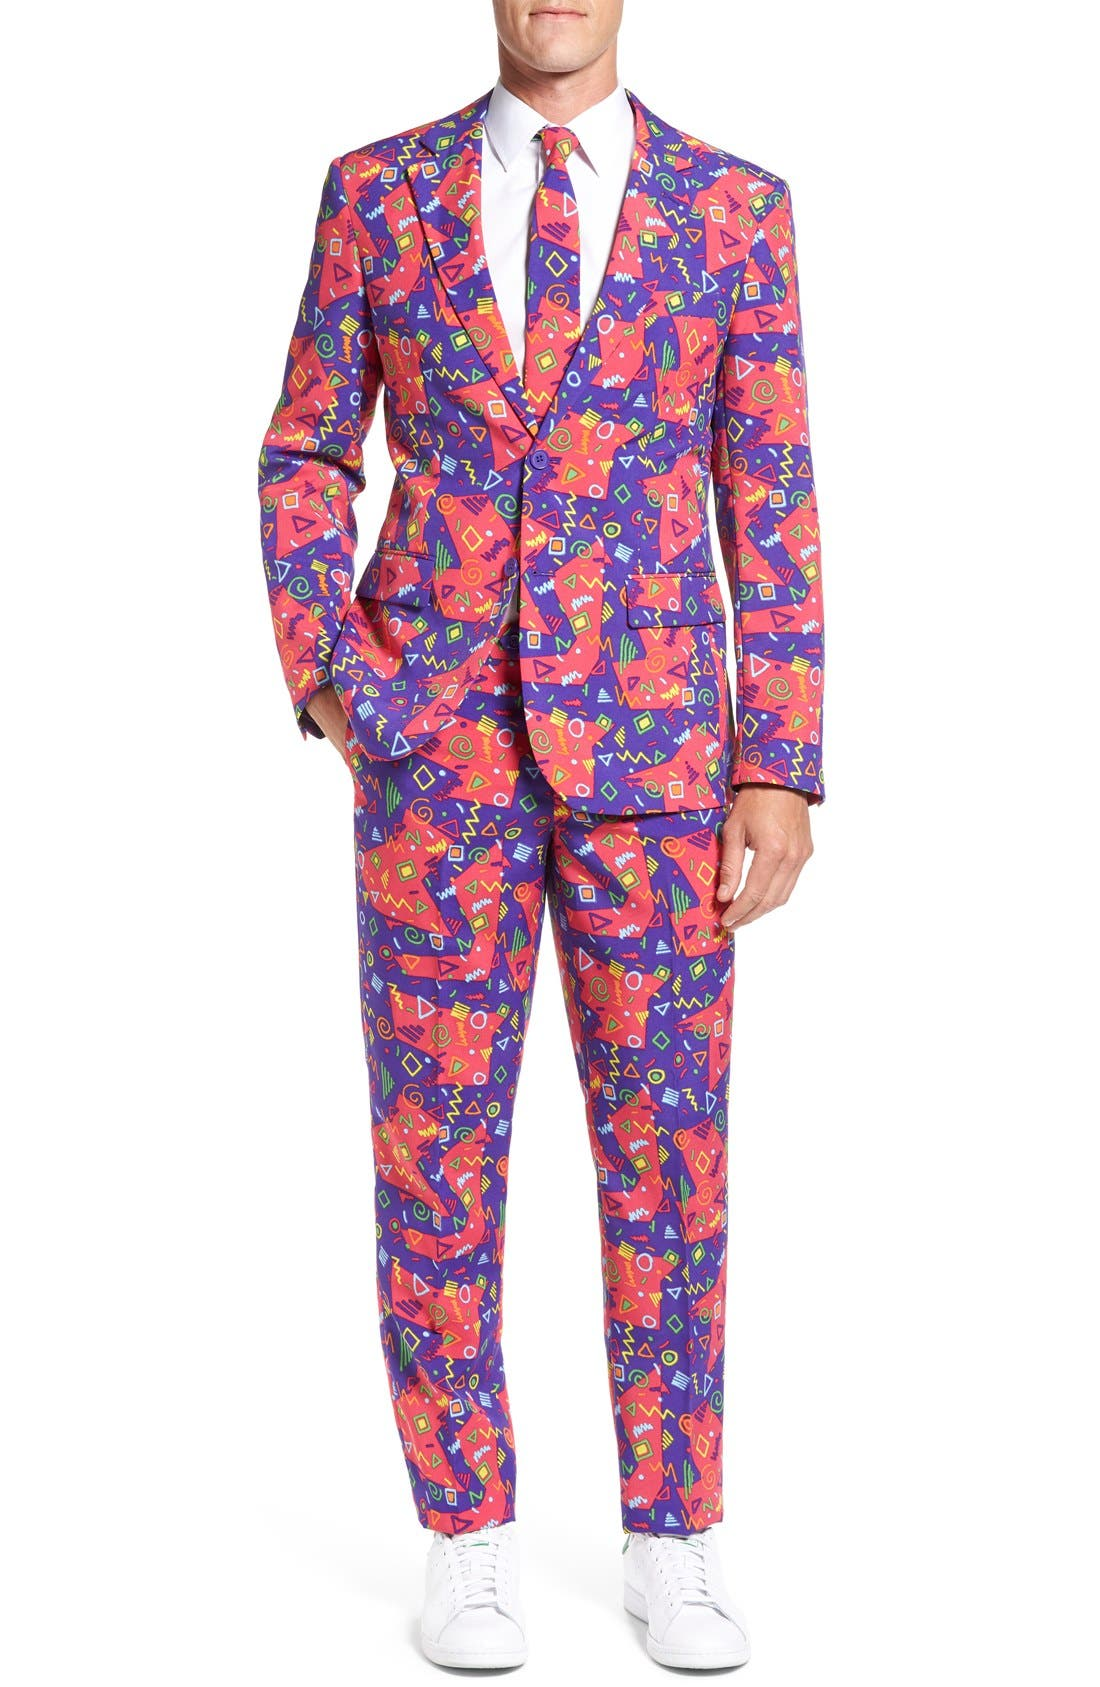 OPPOSUITS 'The Fresh Prince' Trim Fit Two-Piece Suit